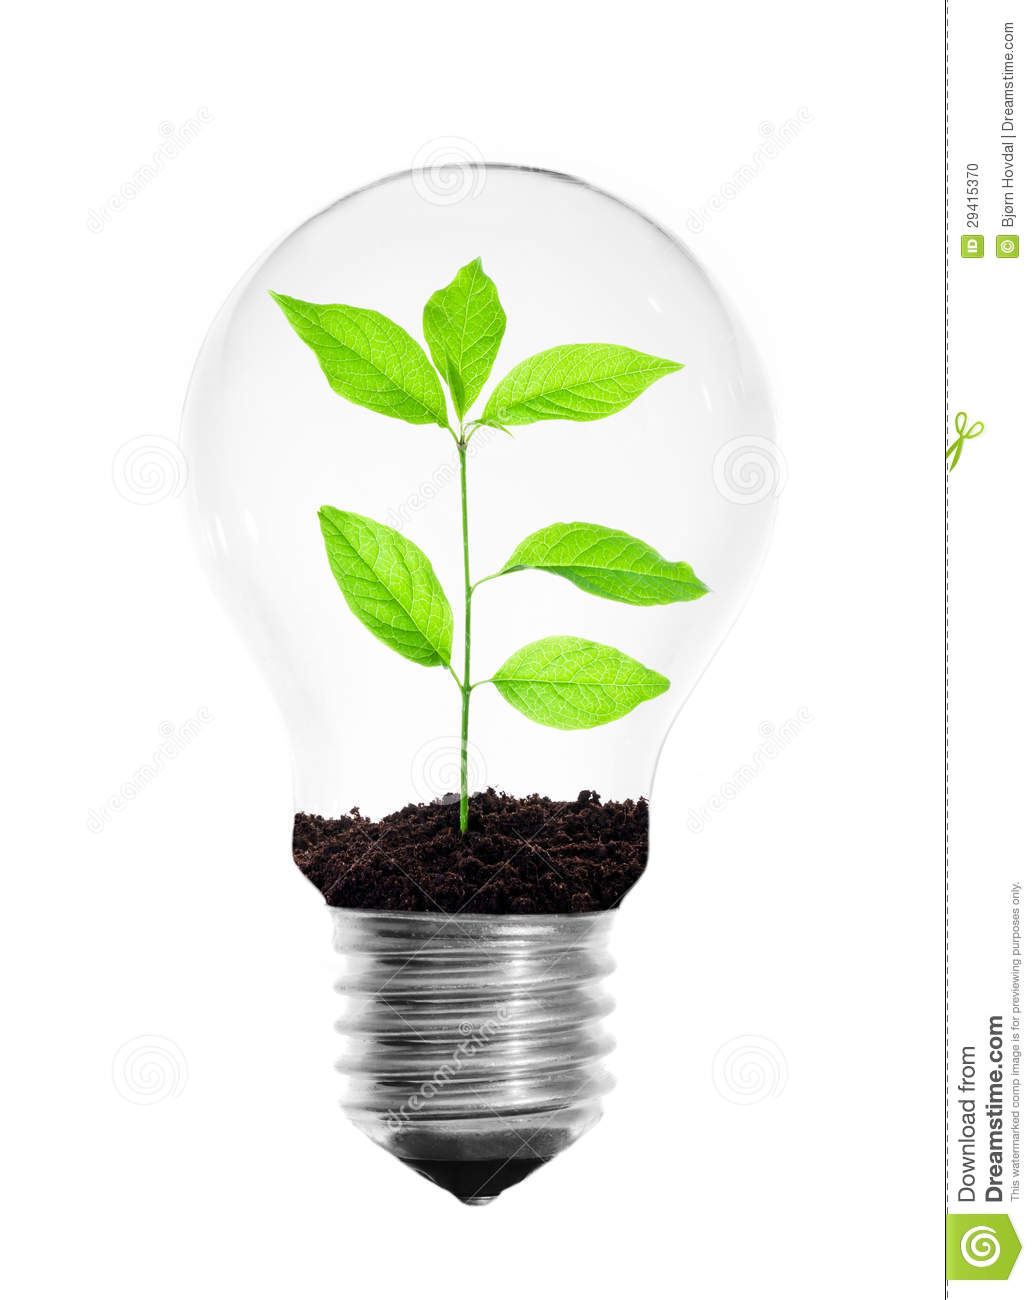 Light bulb with a growing plant inside isolated on a white background.